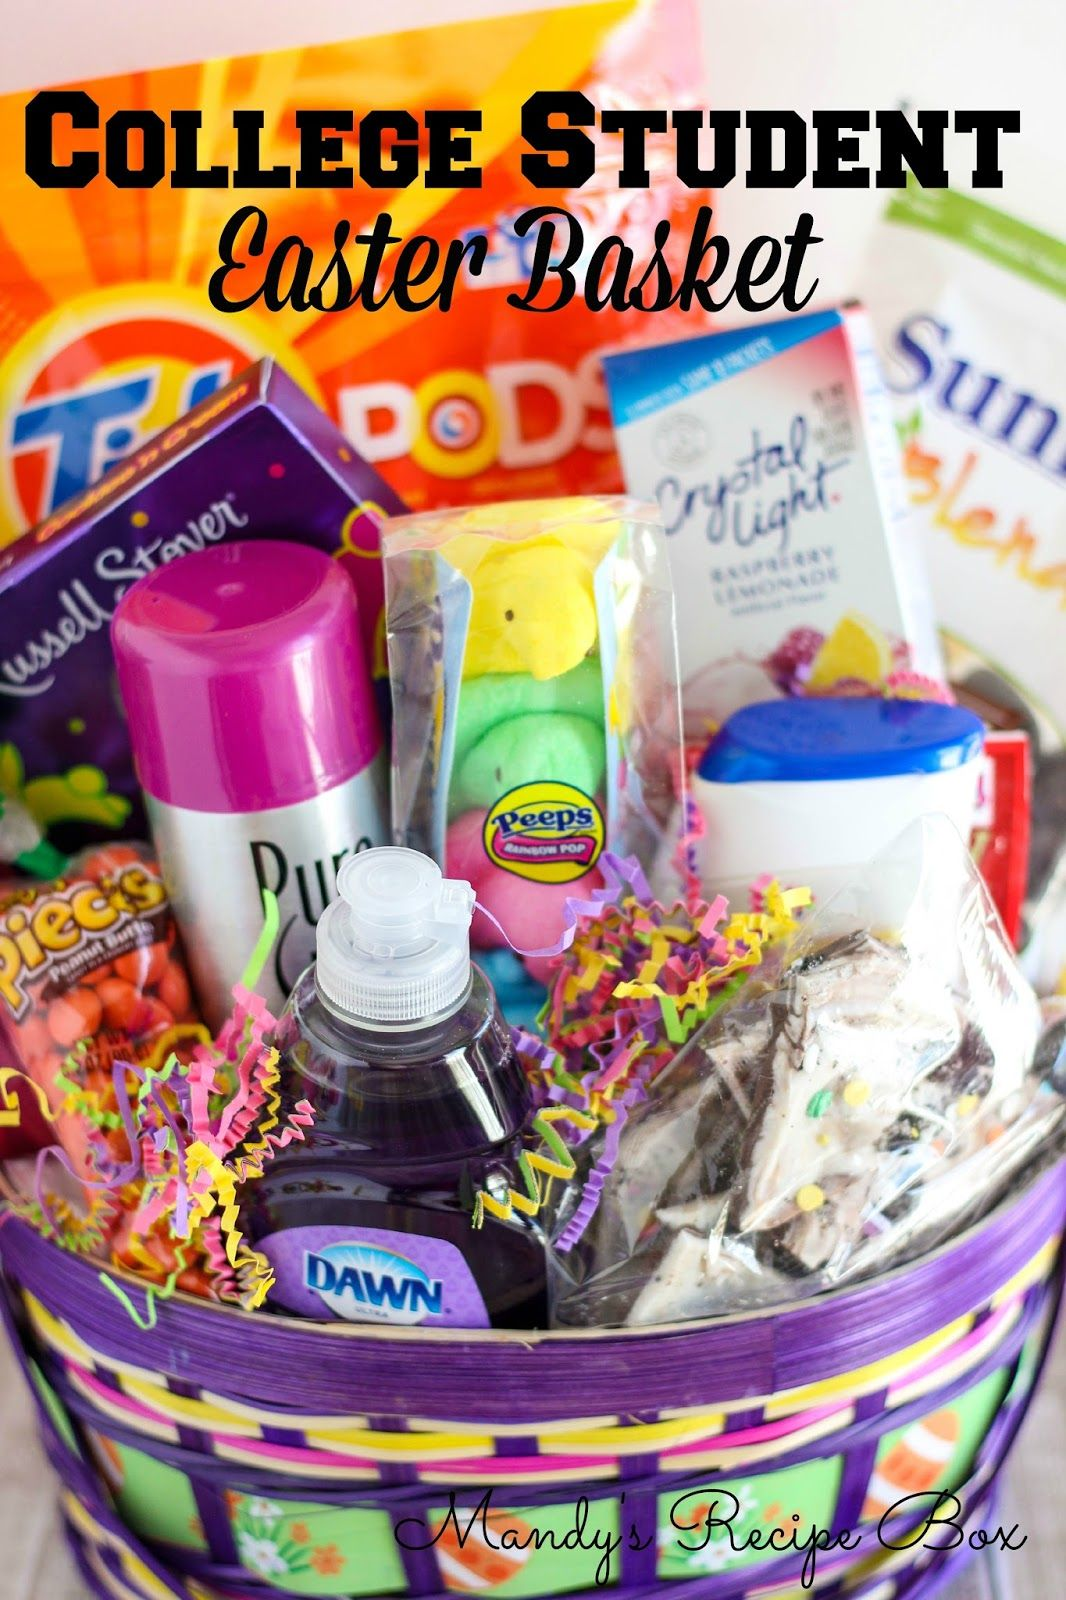 College student easter basket recipe box easter baskets and college college student easter basket mandys recipe box negle Image collections